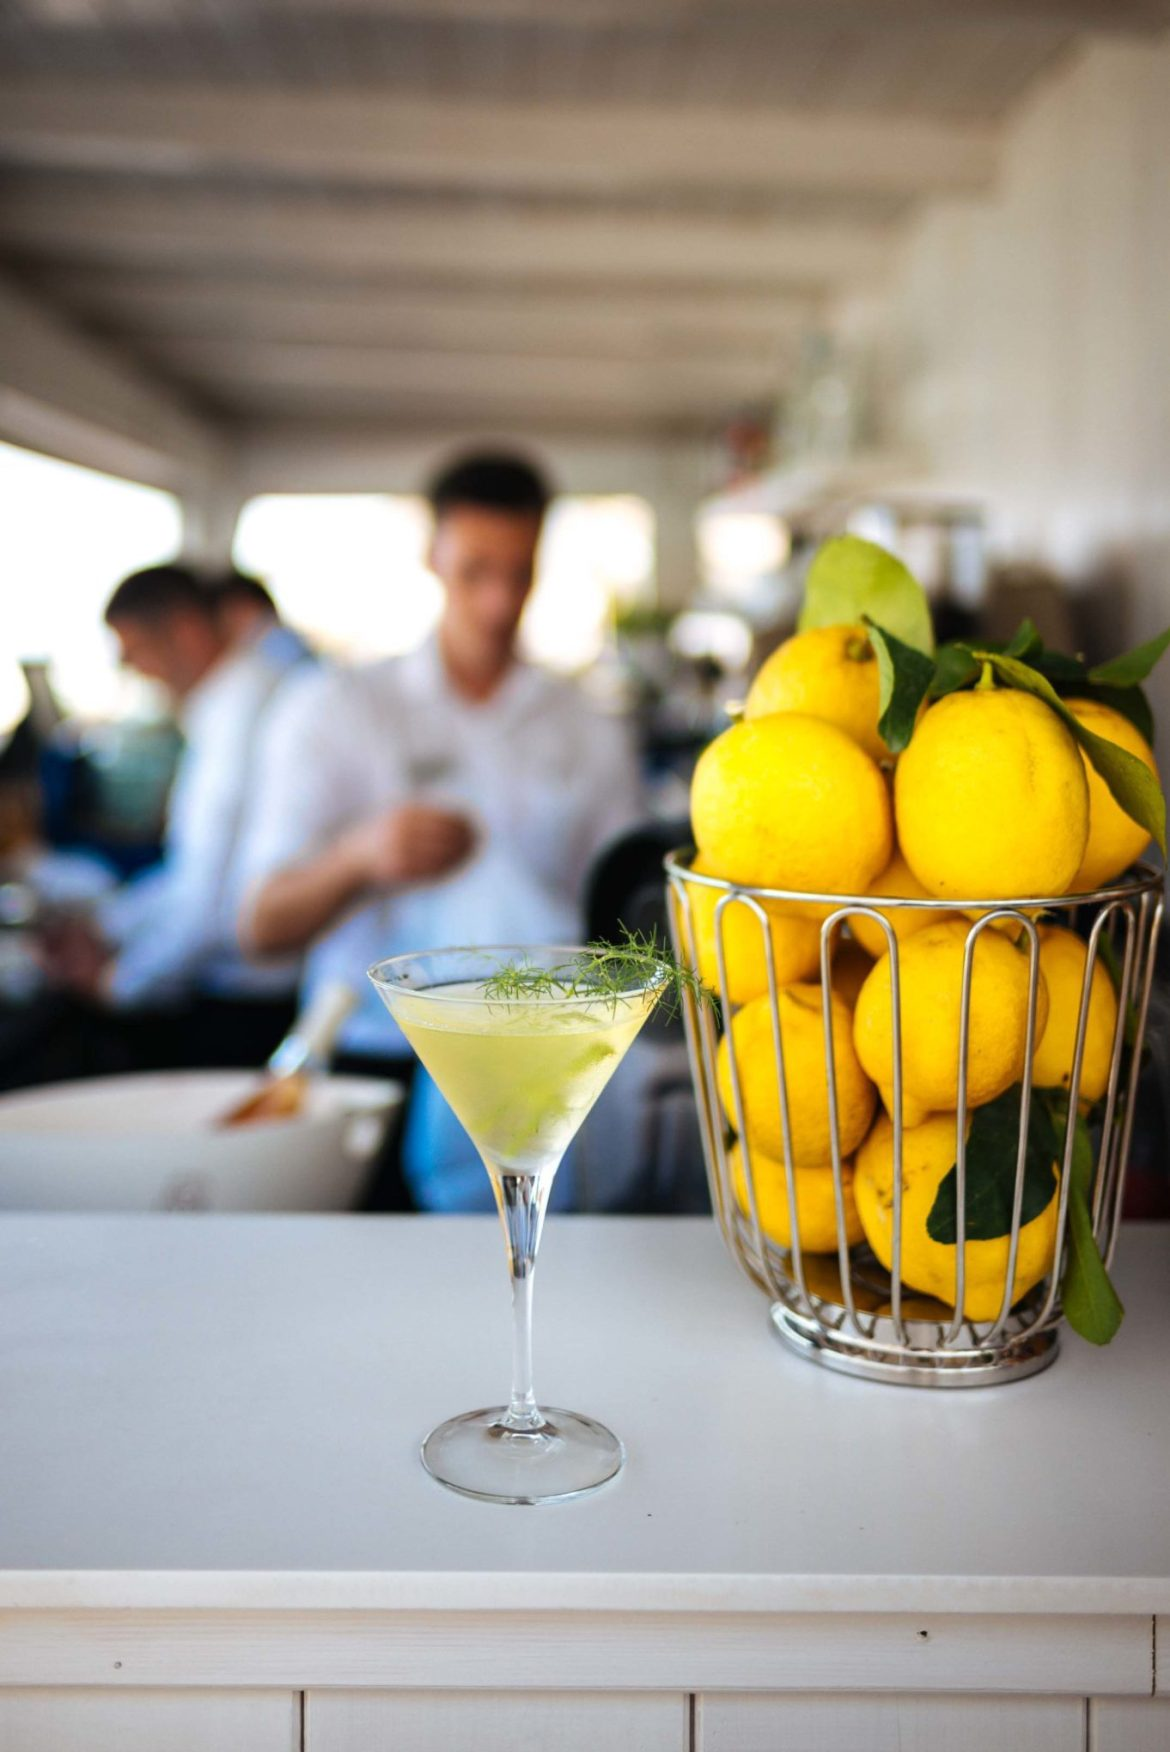 The Taste Edit shares the recipe for the Mare Nostrum gin cocktail at La Plage Resort, Taormina Sicily Italy